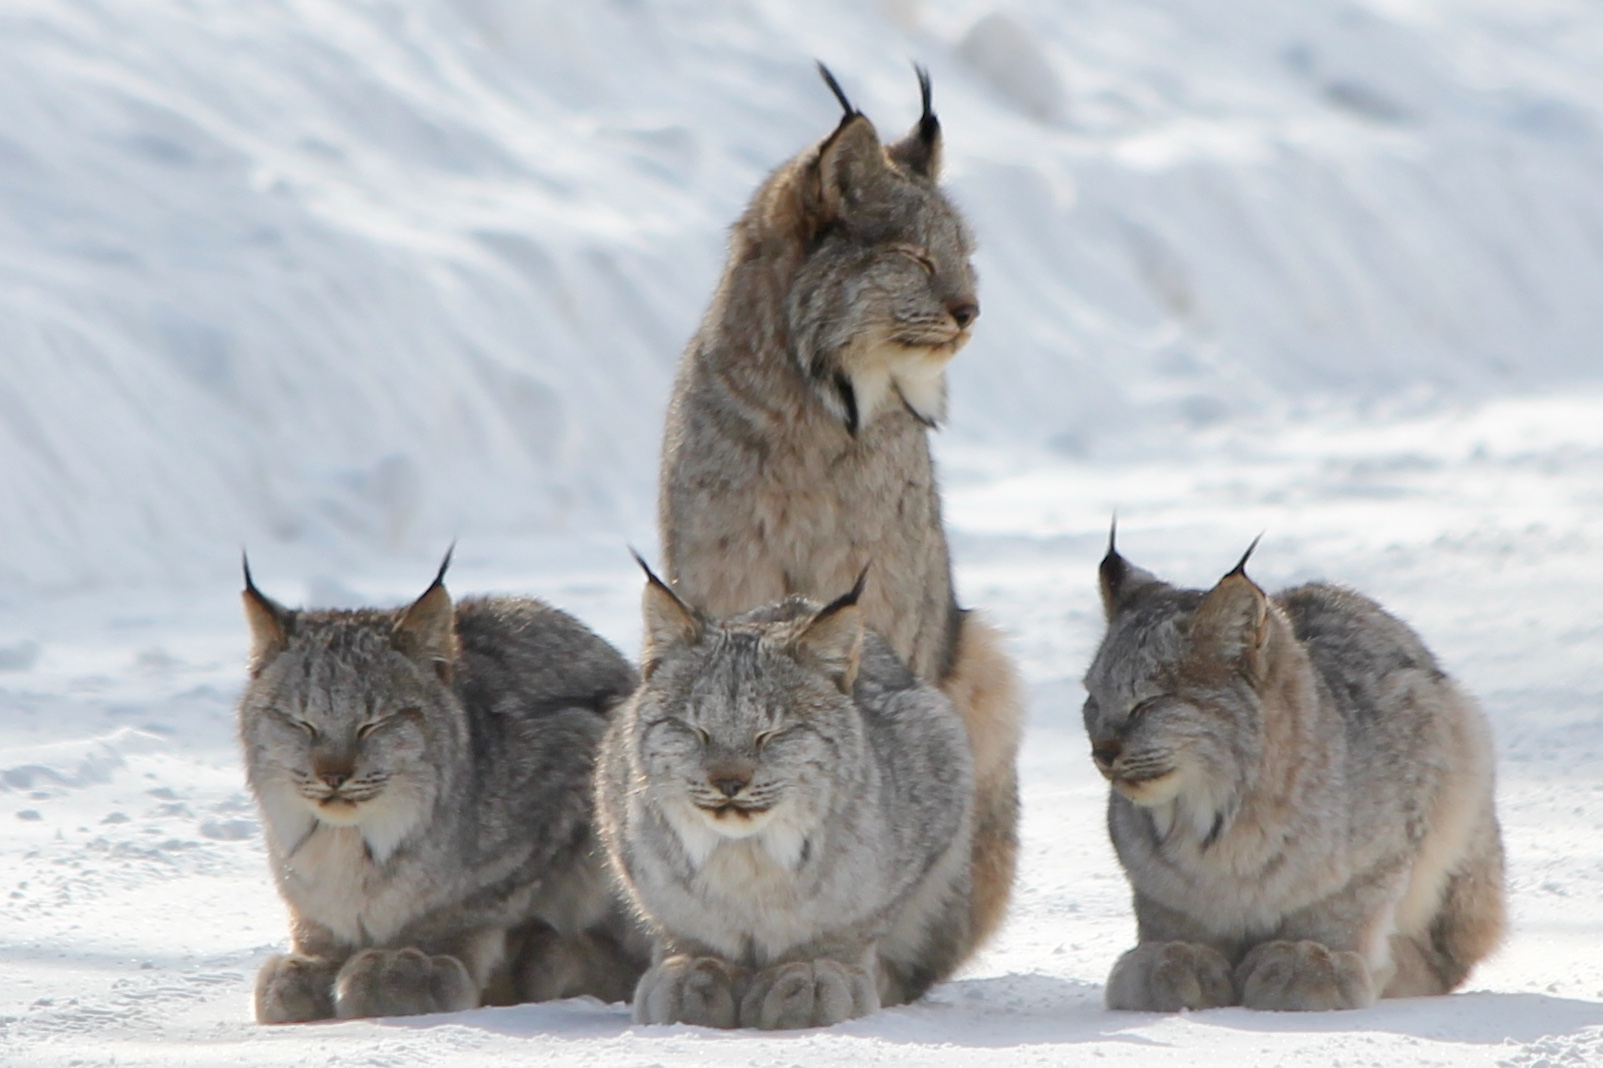 A family of lynx's sits on the snow